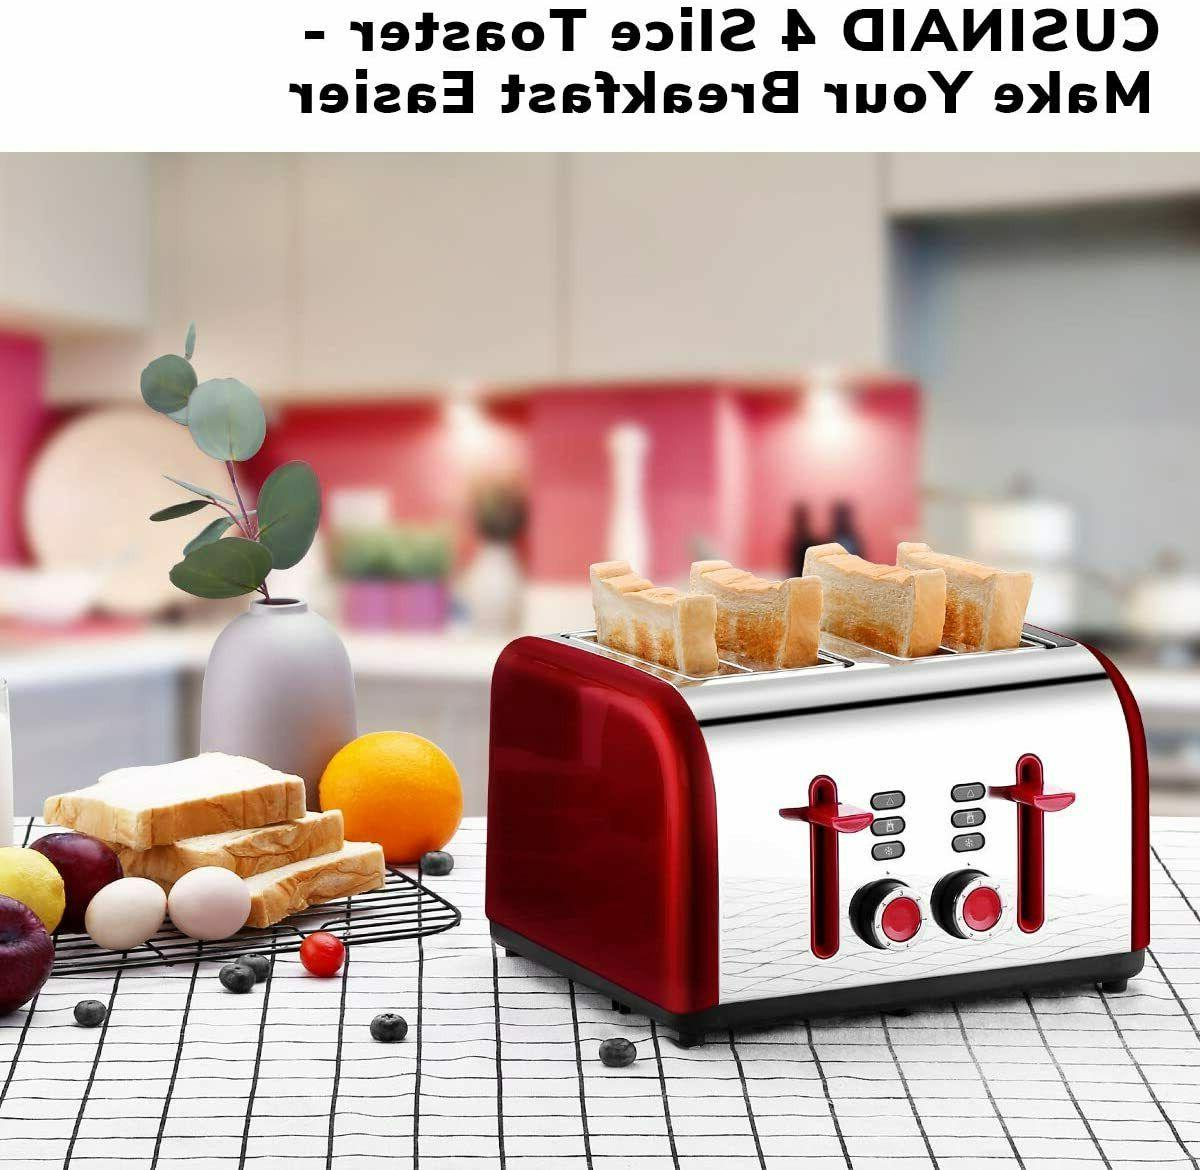 Toaster 4 Slice, 4 Wide Stainless Toasters with Reheat